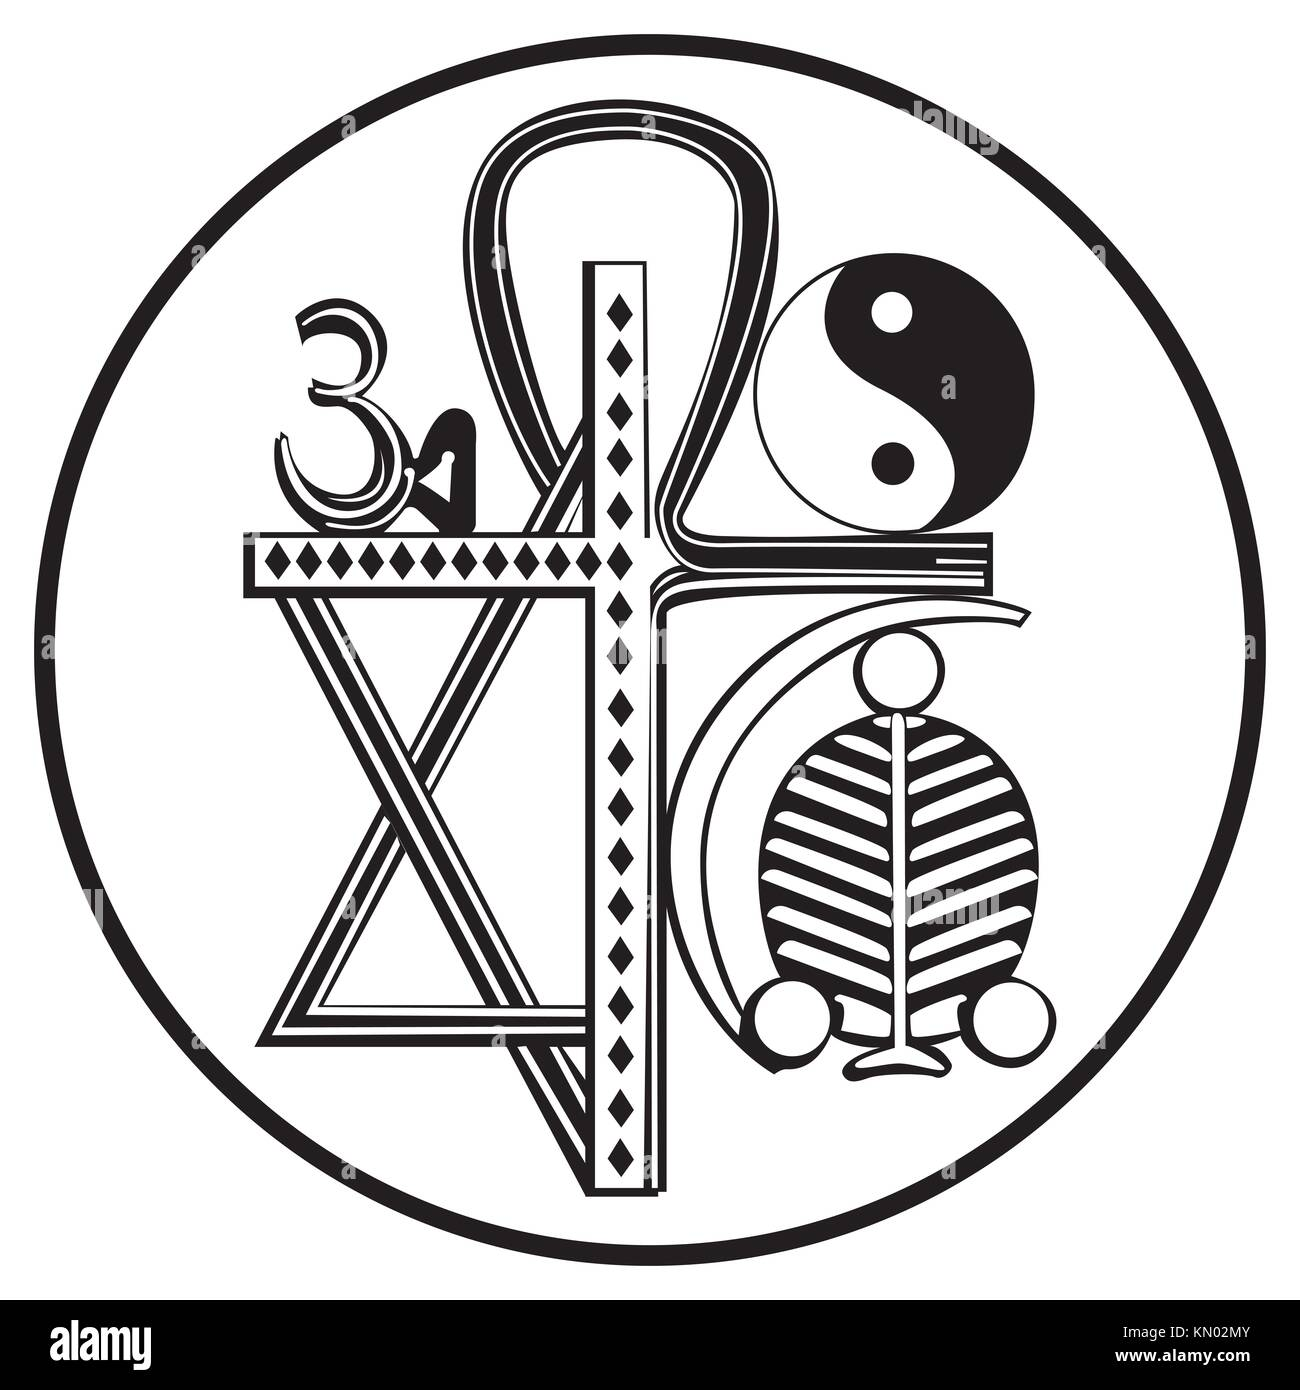 Religion symbols cut out stock images pictures alamy universal religions and religious symbols isolated on white stock image biocorpaavc Gallery